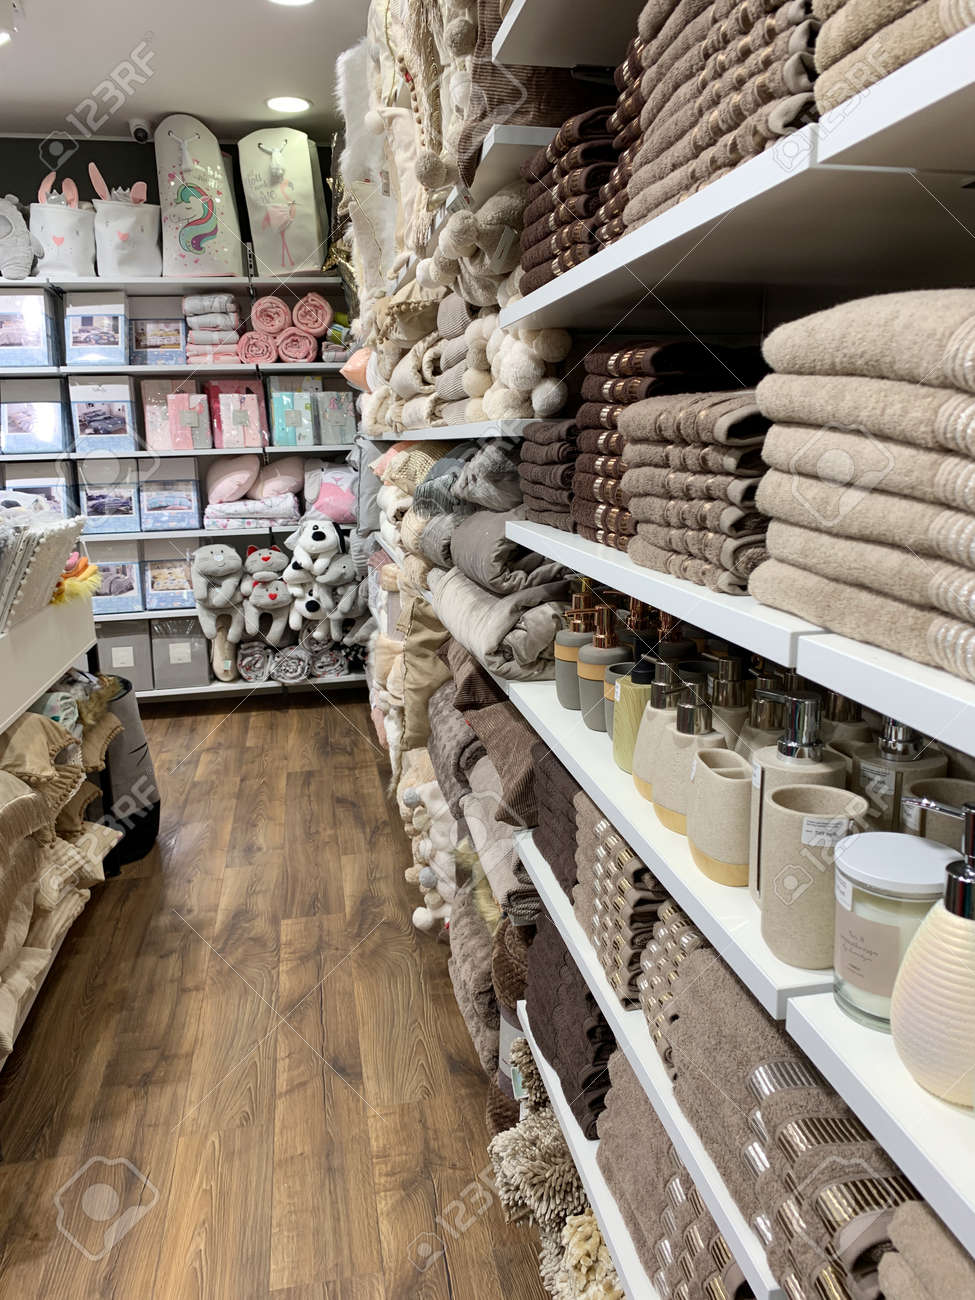 Home Decorations In Decorations Store Modern Textile Shop For Stock Photo Picture And Royalty Free Image Image 140651827